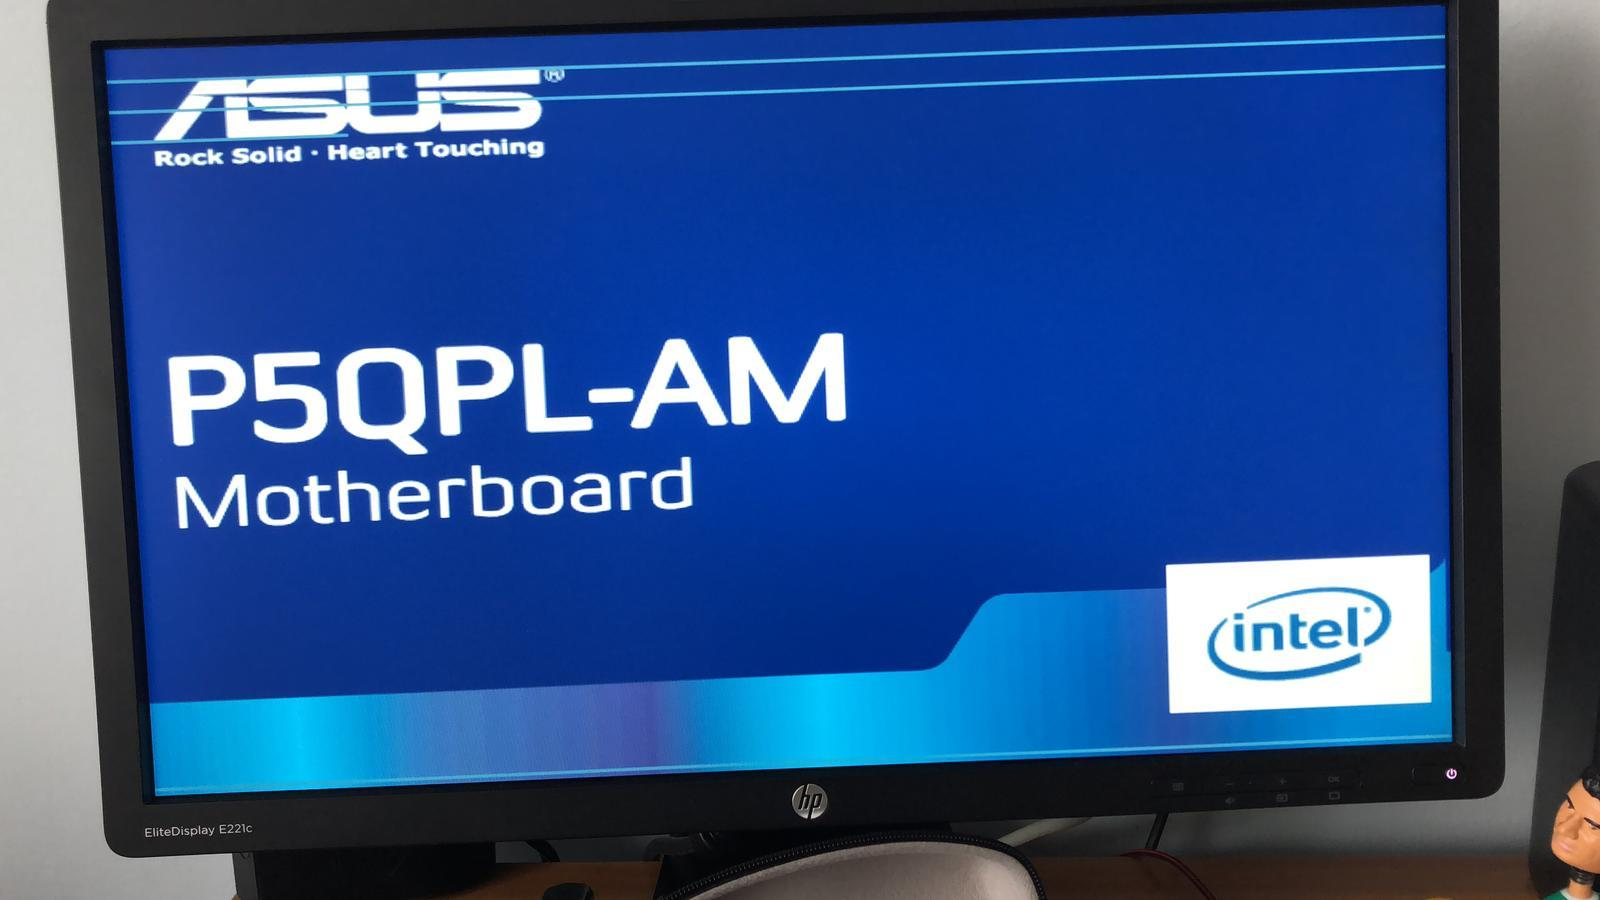 Help with Asus P5QPL-AM | Tom's Hardware Forum